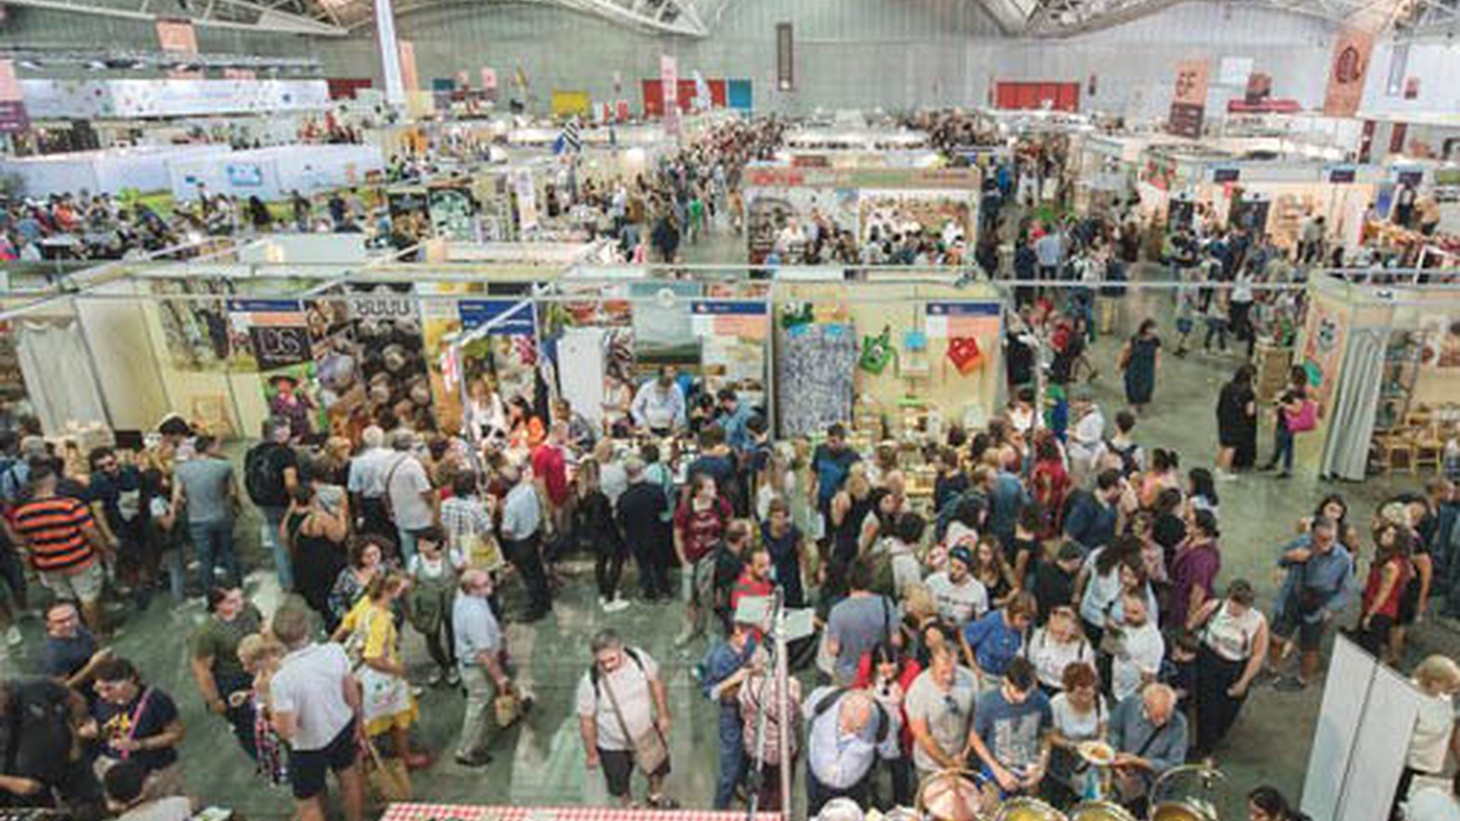 This year's Slow Food gathering in Turin, Italy.